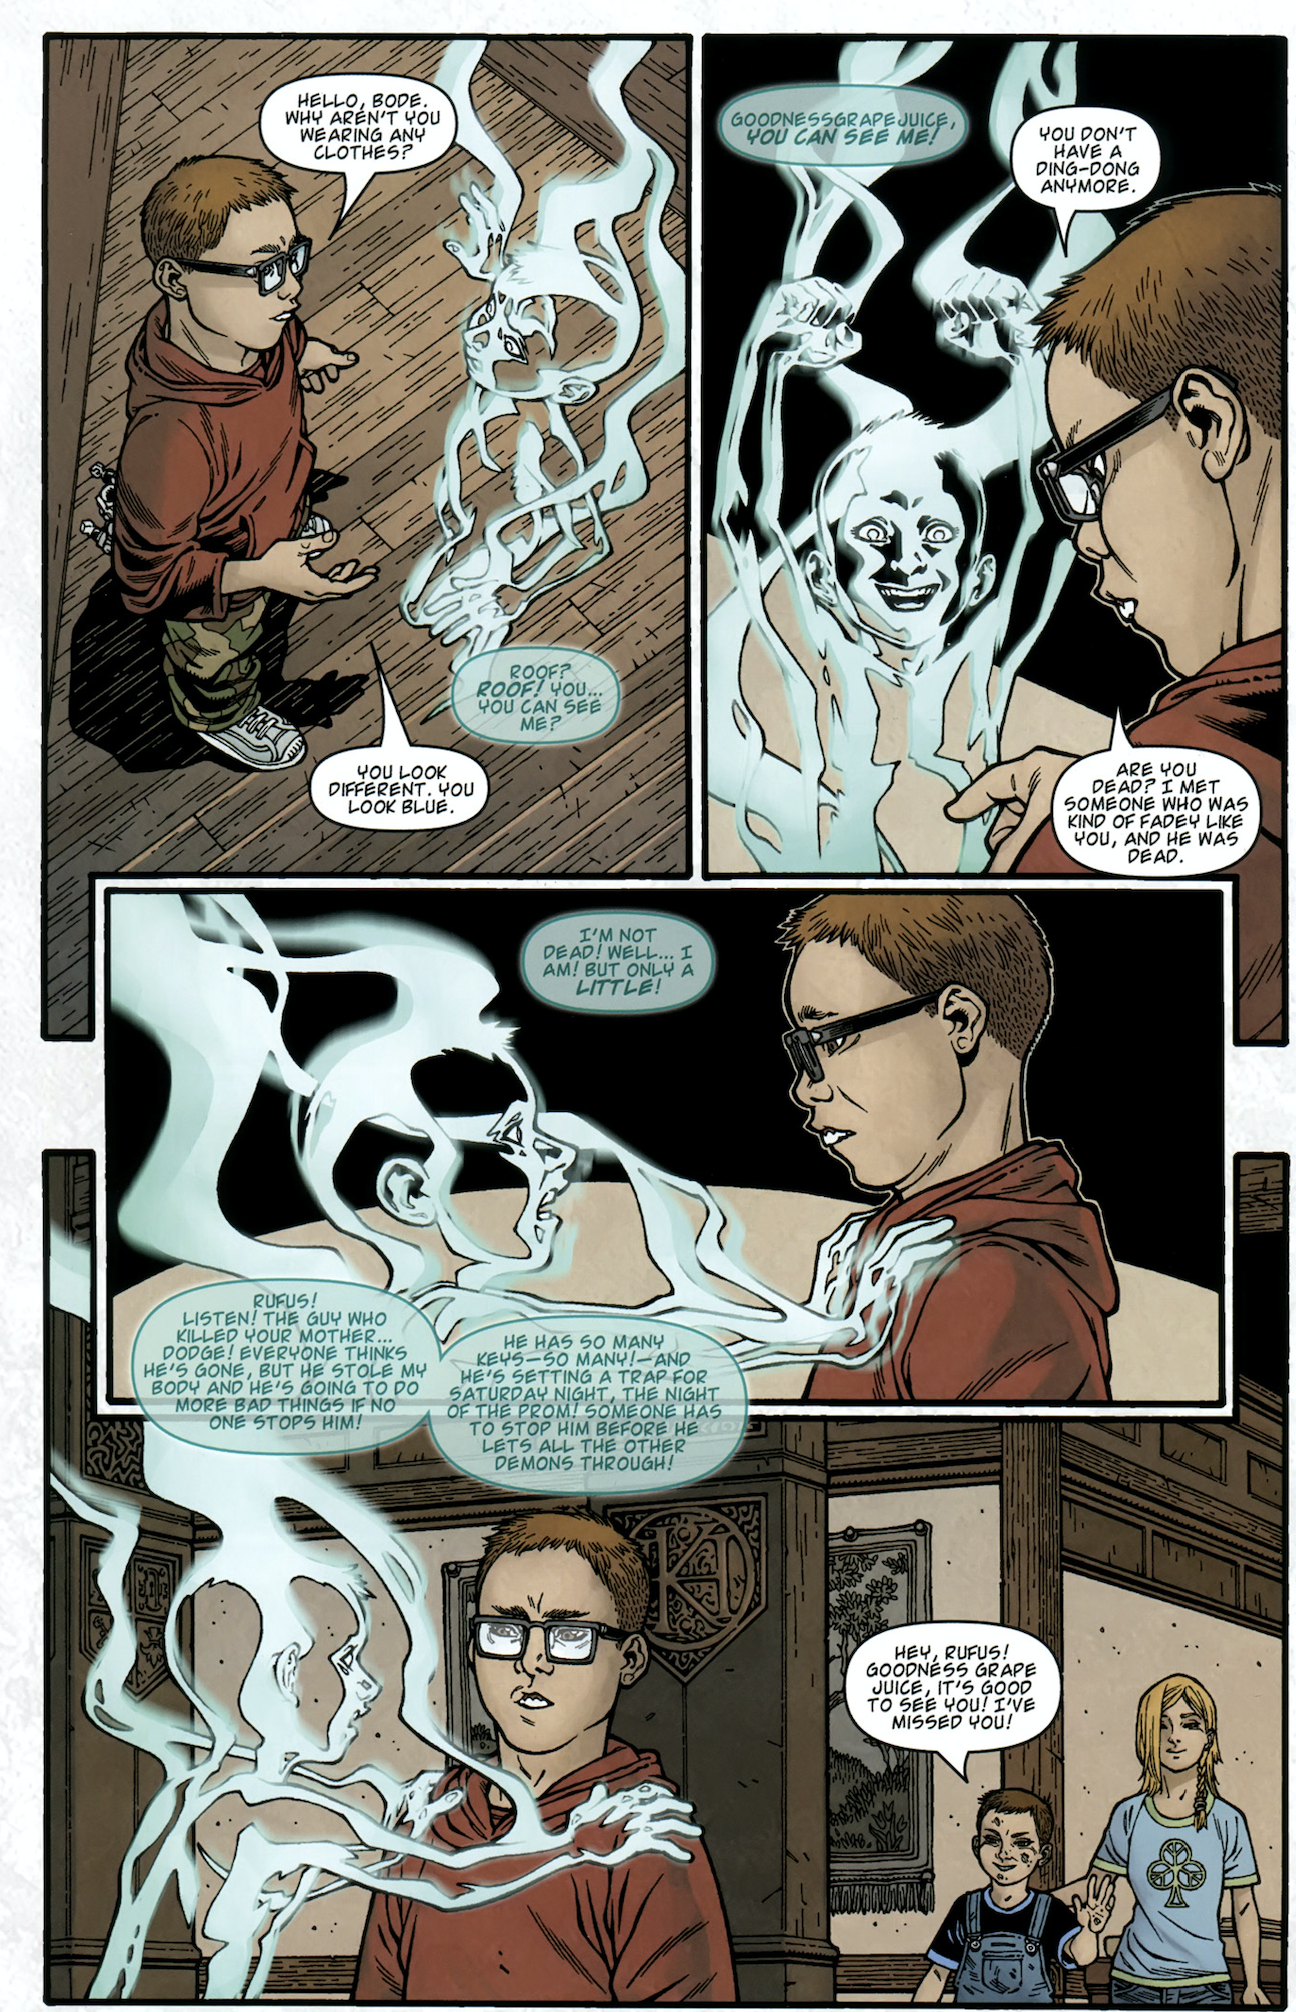 Rufus Whedon speaks with Bodie Locke's specter in the comic